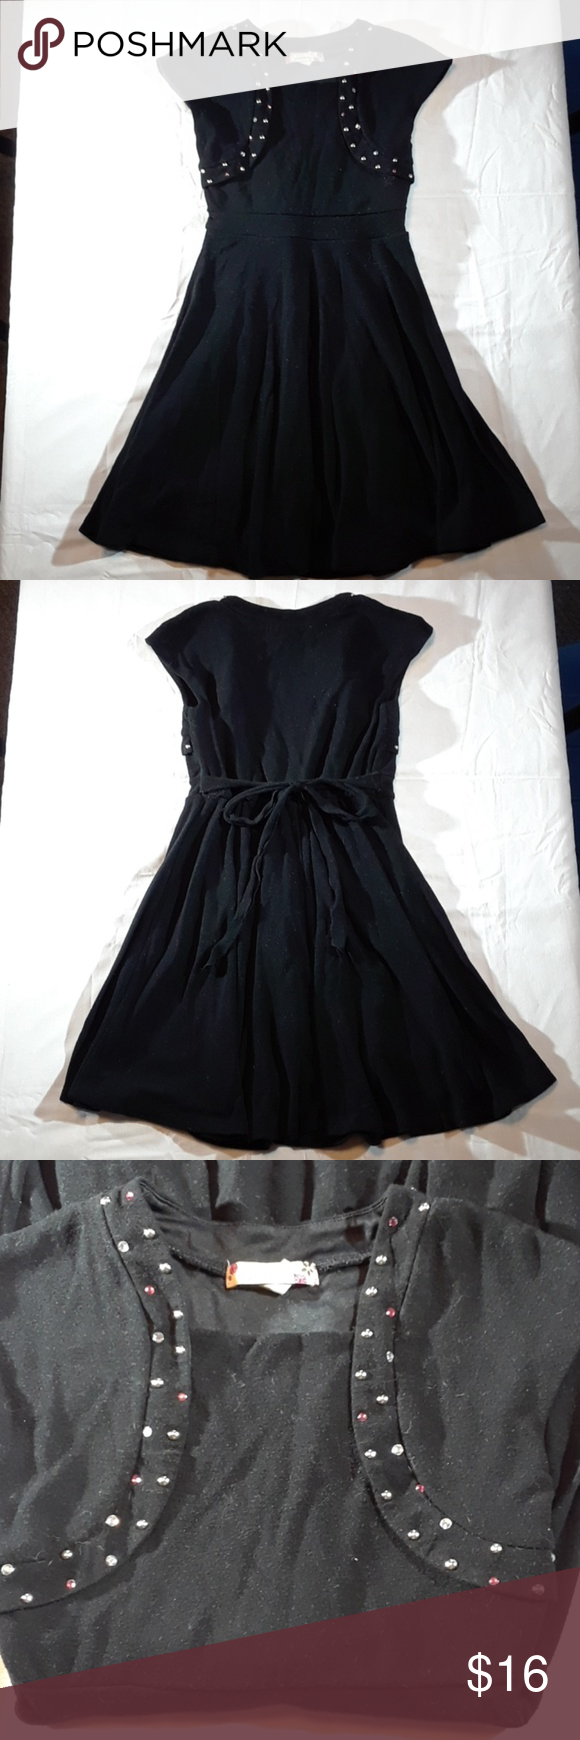 Speechless girls black dress girls black dress size and flaws